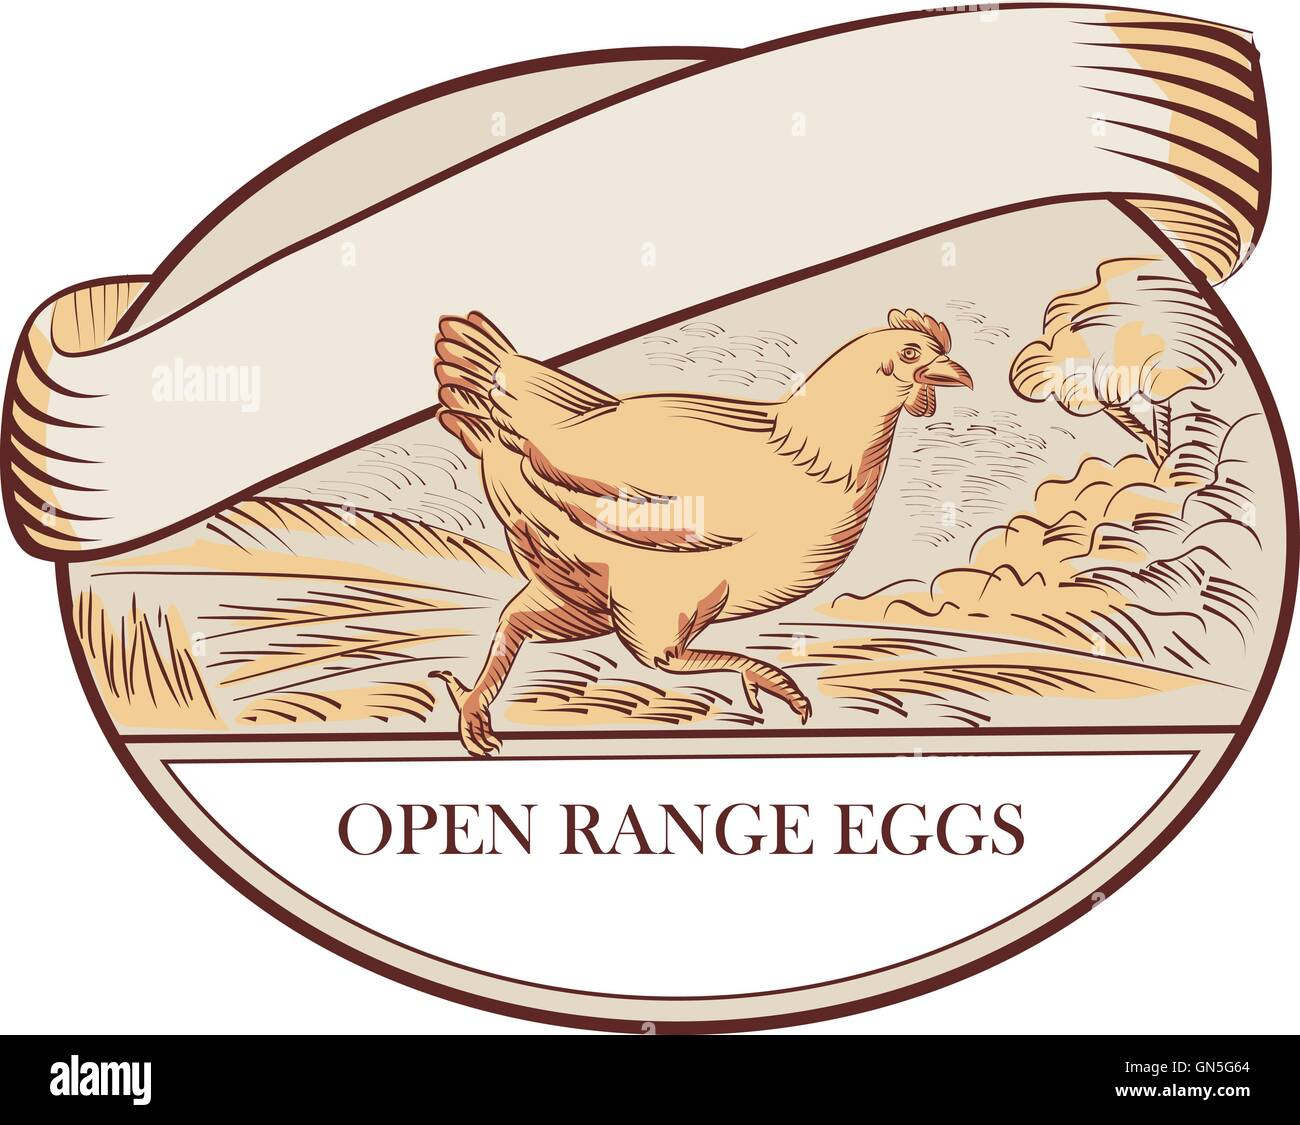 Hen Running Open Range Eggs Oval Drawing - Stock Vector